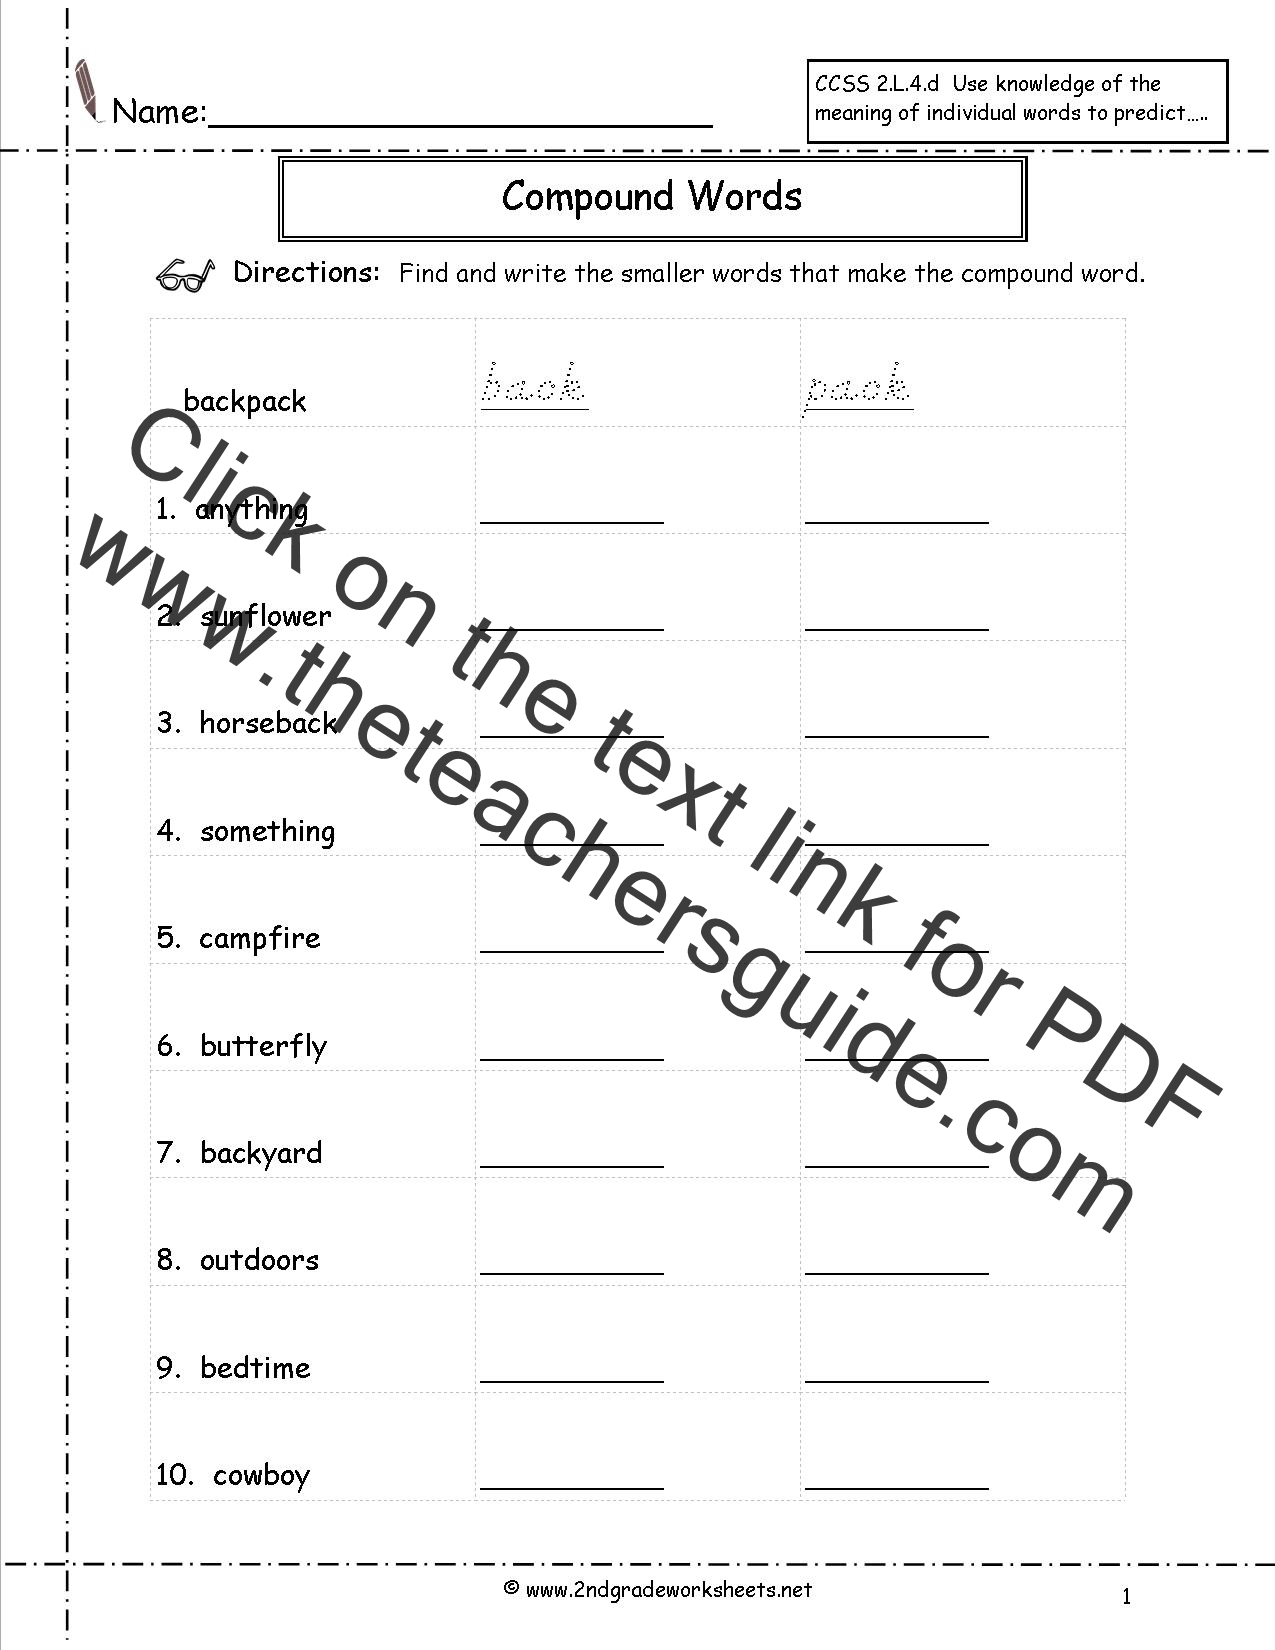 Worksheet Grade 2 English Grammar Worksheets free languagegrammar worksheets and printouts compound words worksheets